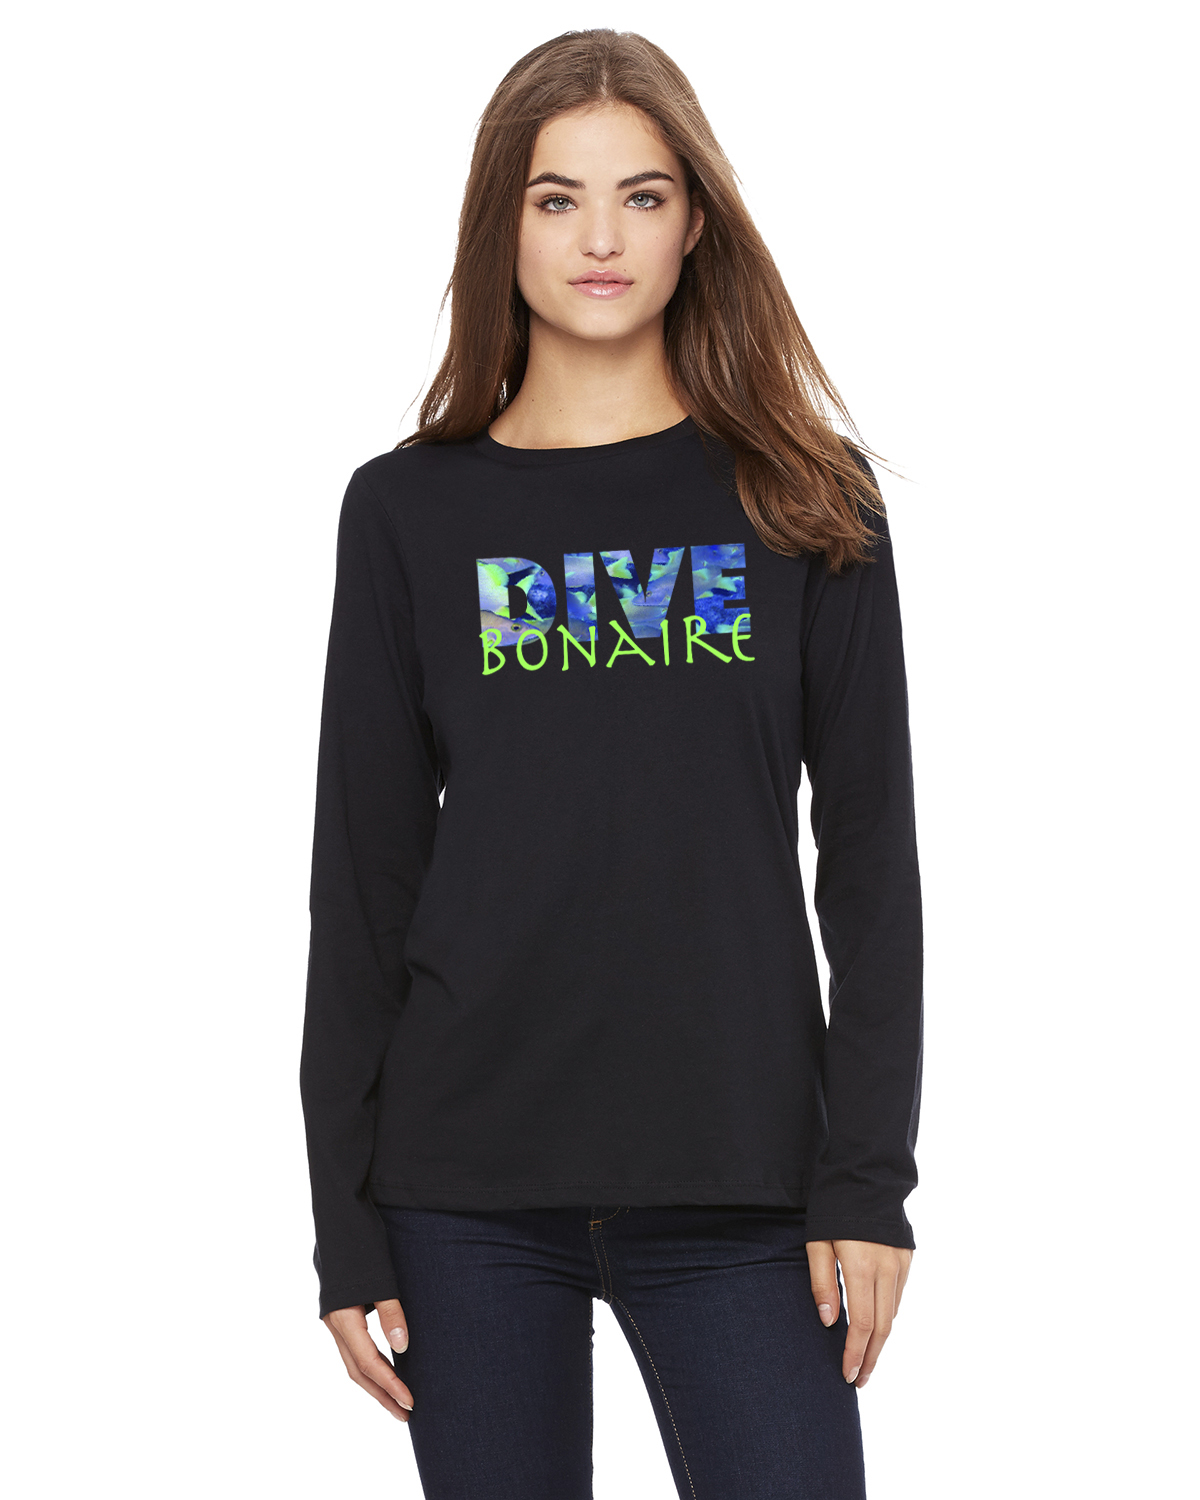 Women's Long Sleeve DIVE Bonaire T-Shirt (Black)